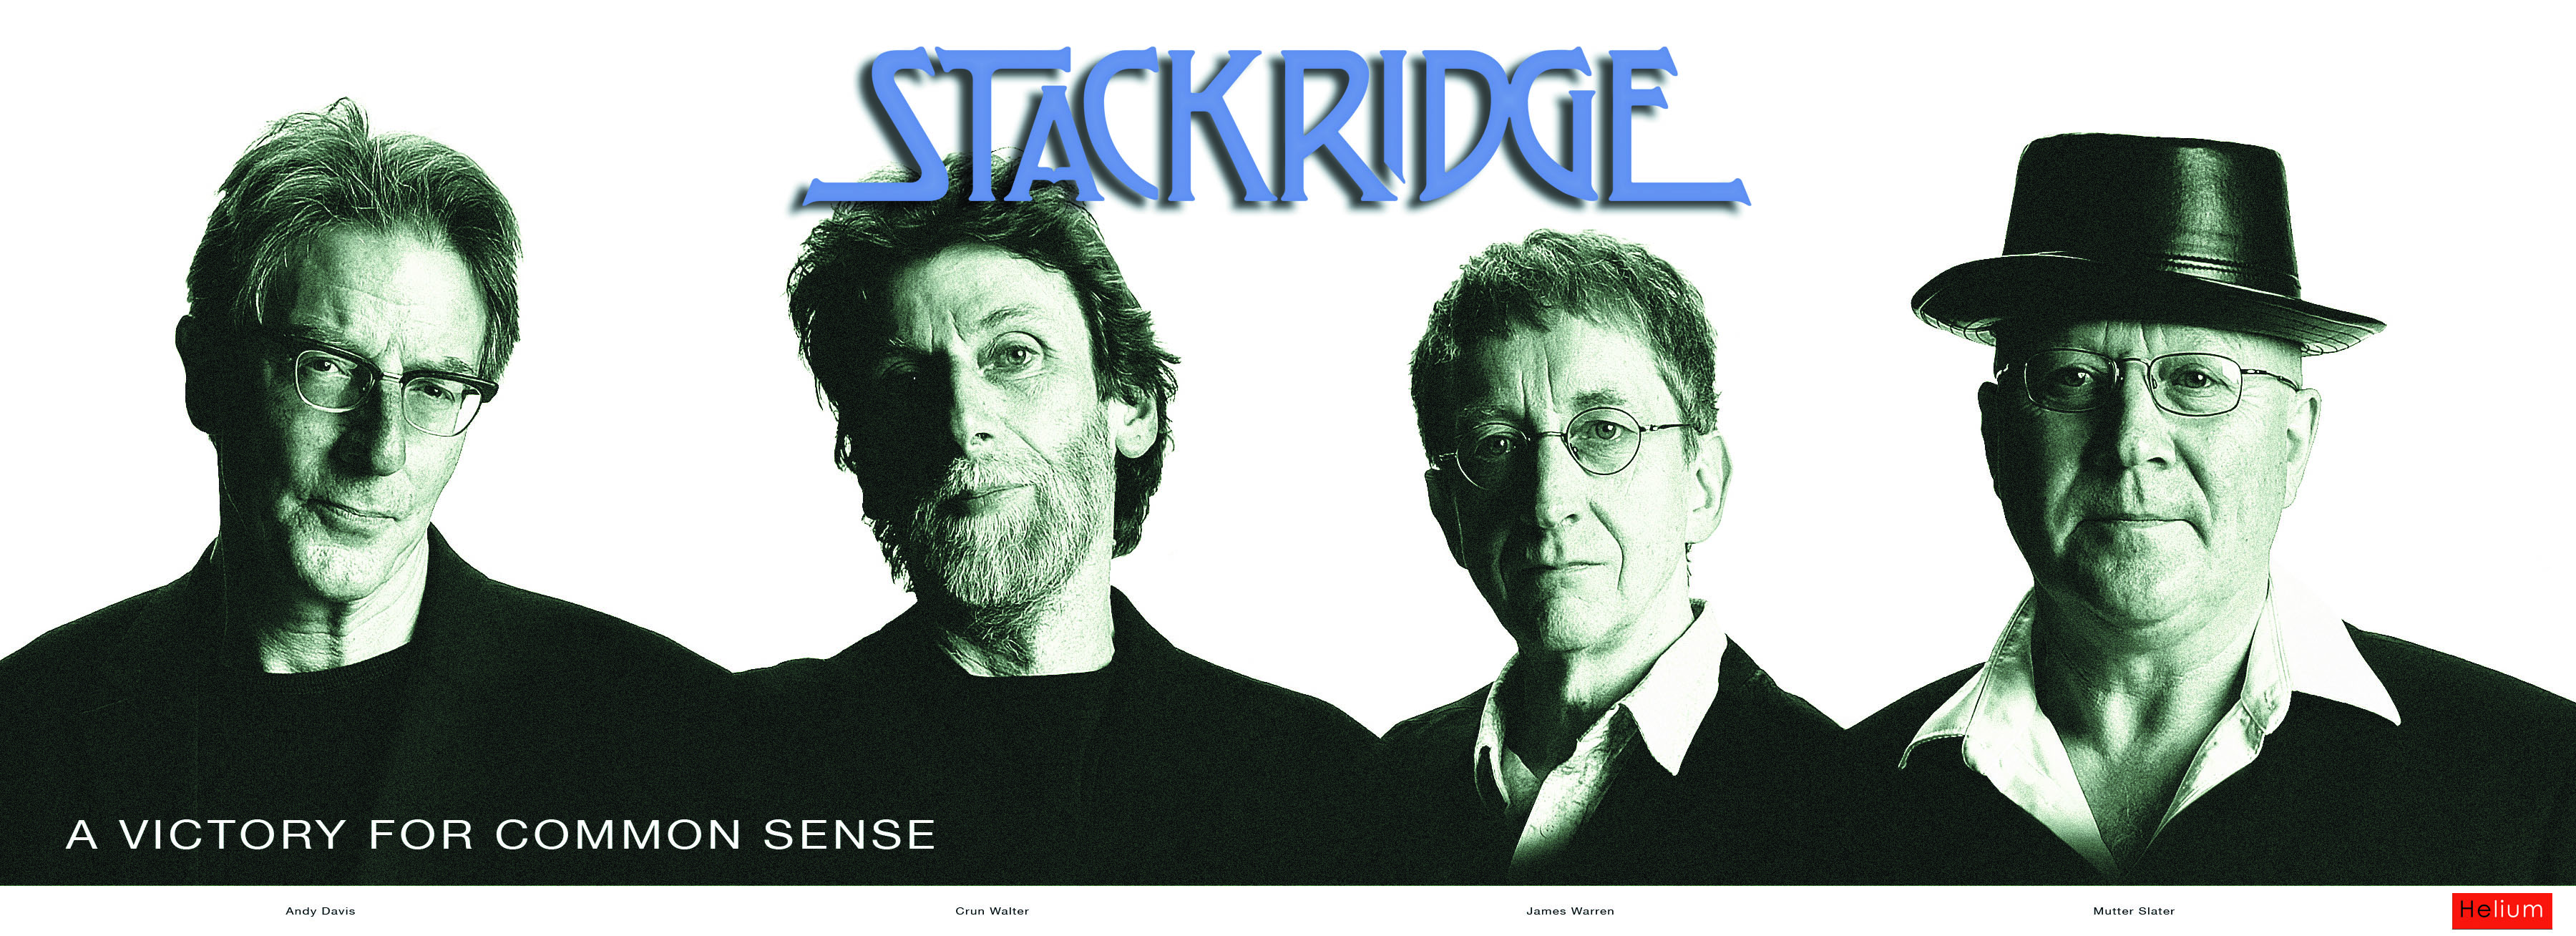 stackridgeposterCMYK